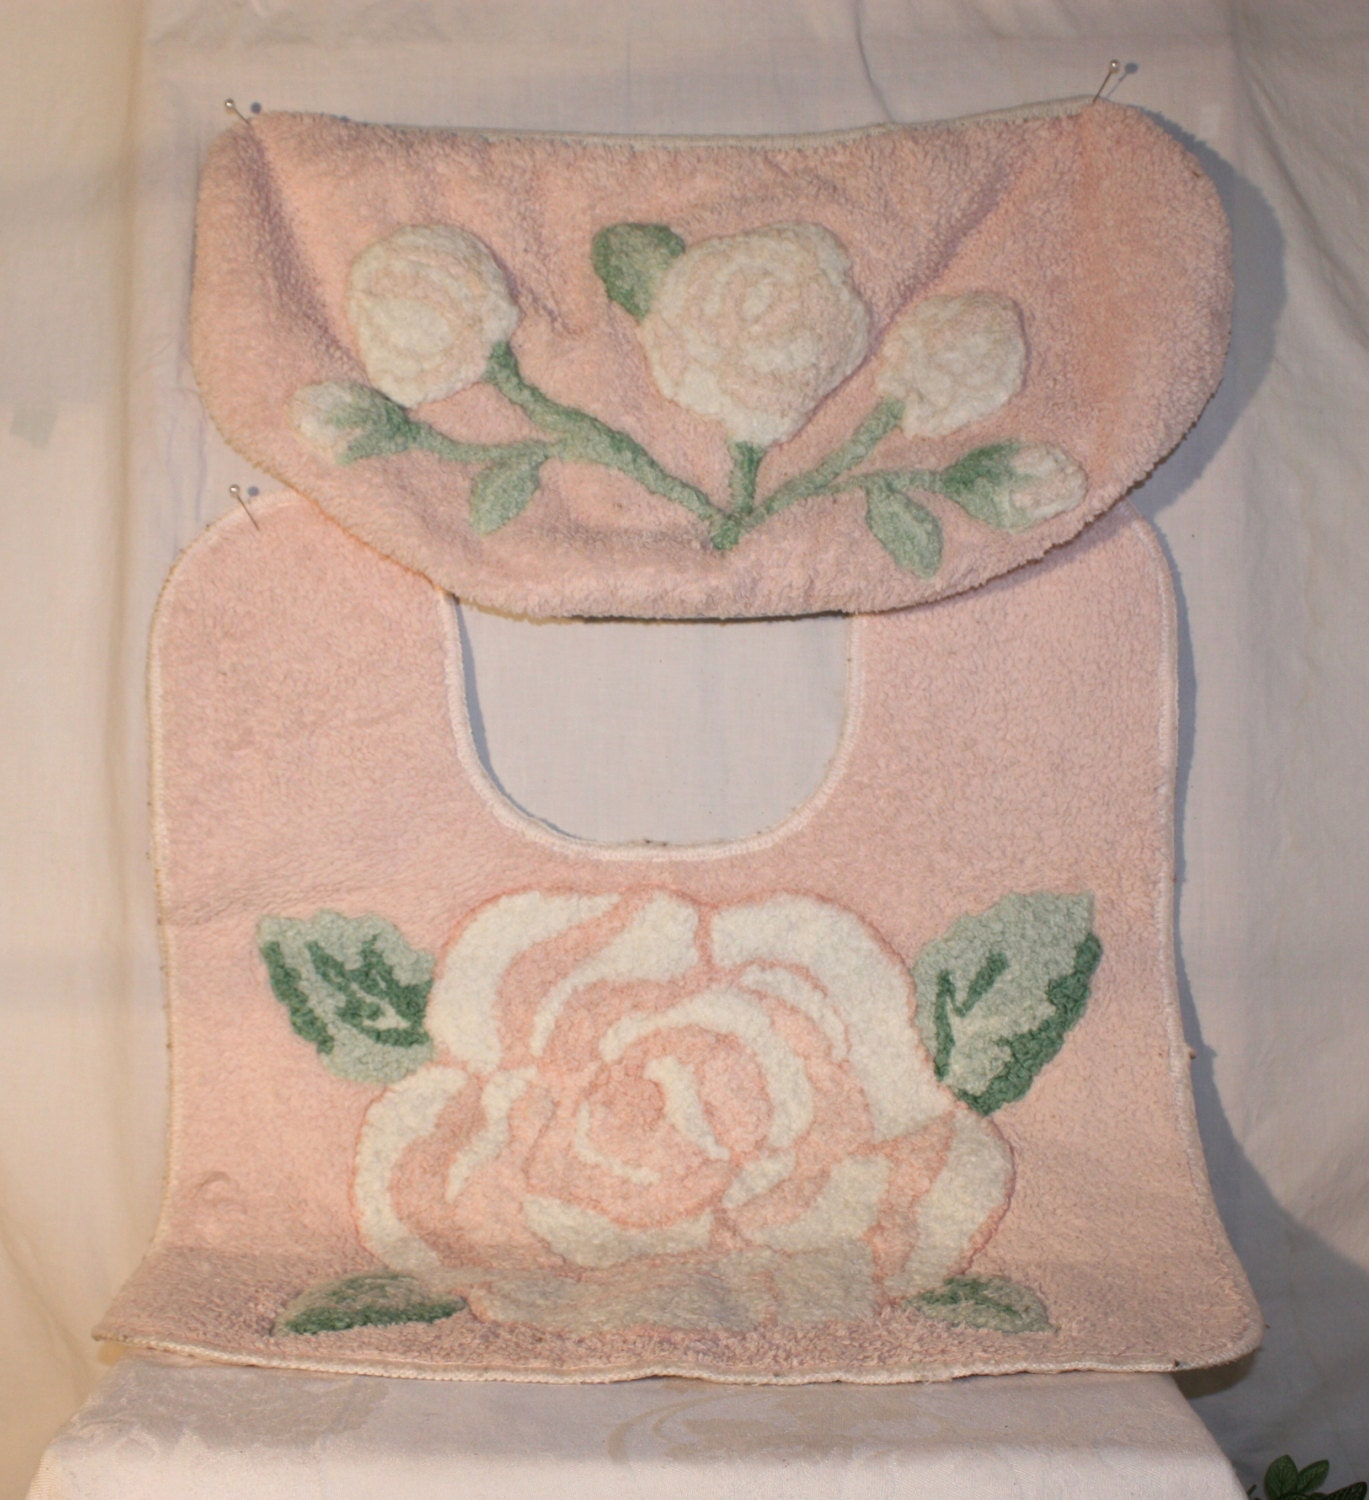 3 Piece Peach Fuzzy Toilet Cover And Rug Set With White Rose